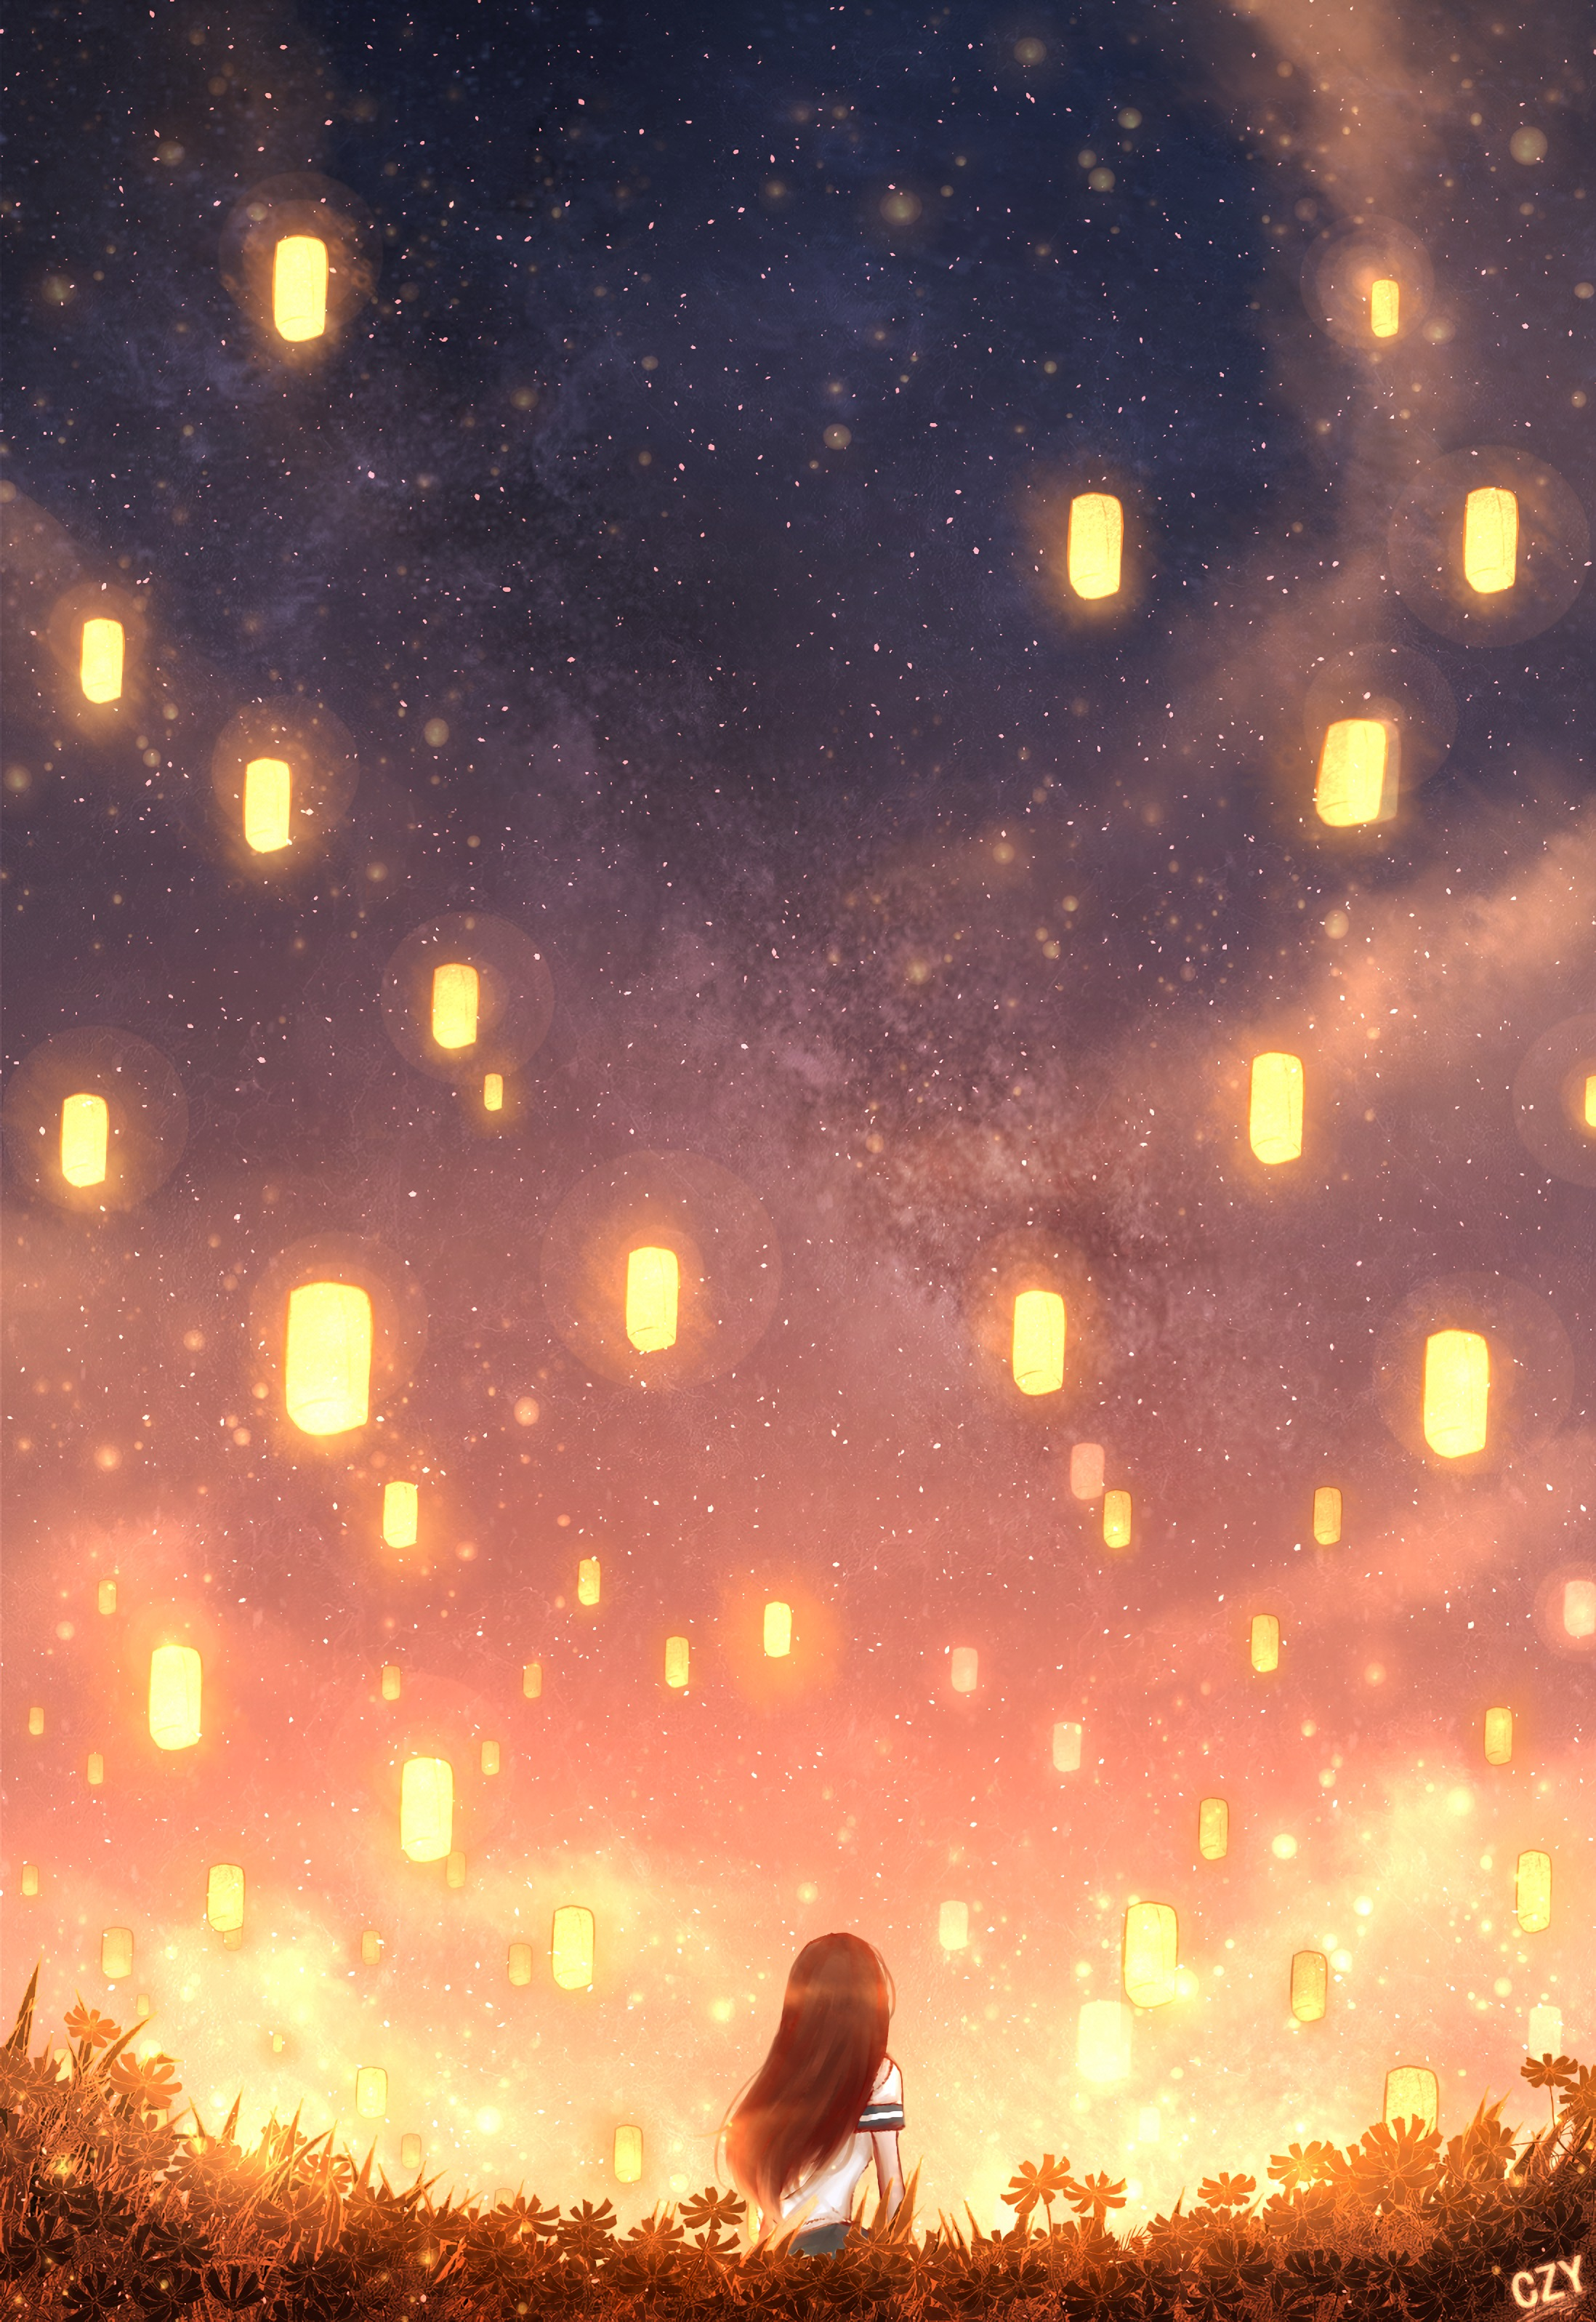 156882 download wallpaper Anime, Girl, Lanterns, Lights, Grass, Art screensavers and pictures for free